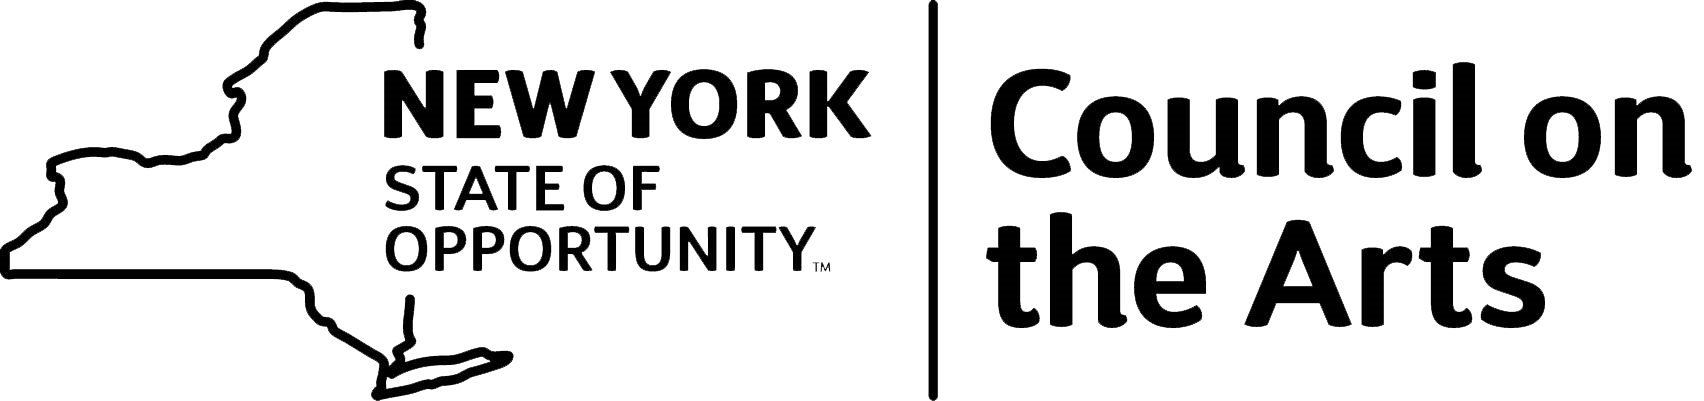 New York State Council on the Arts Logo in black text and outline.